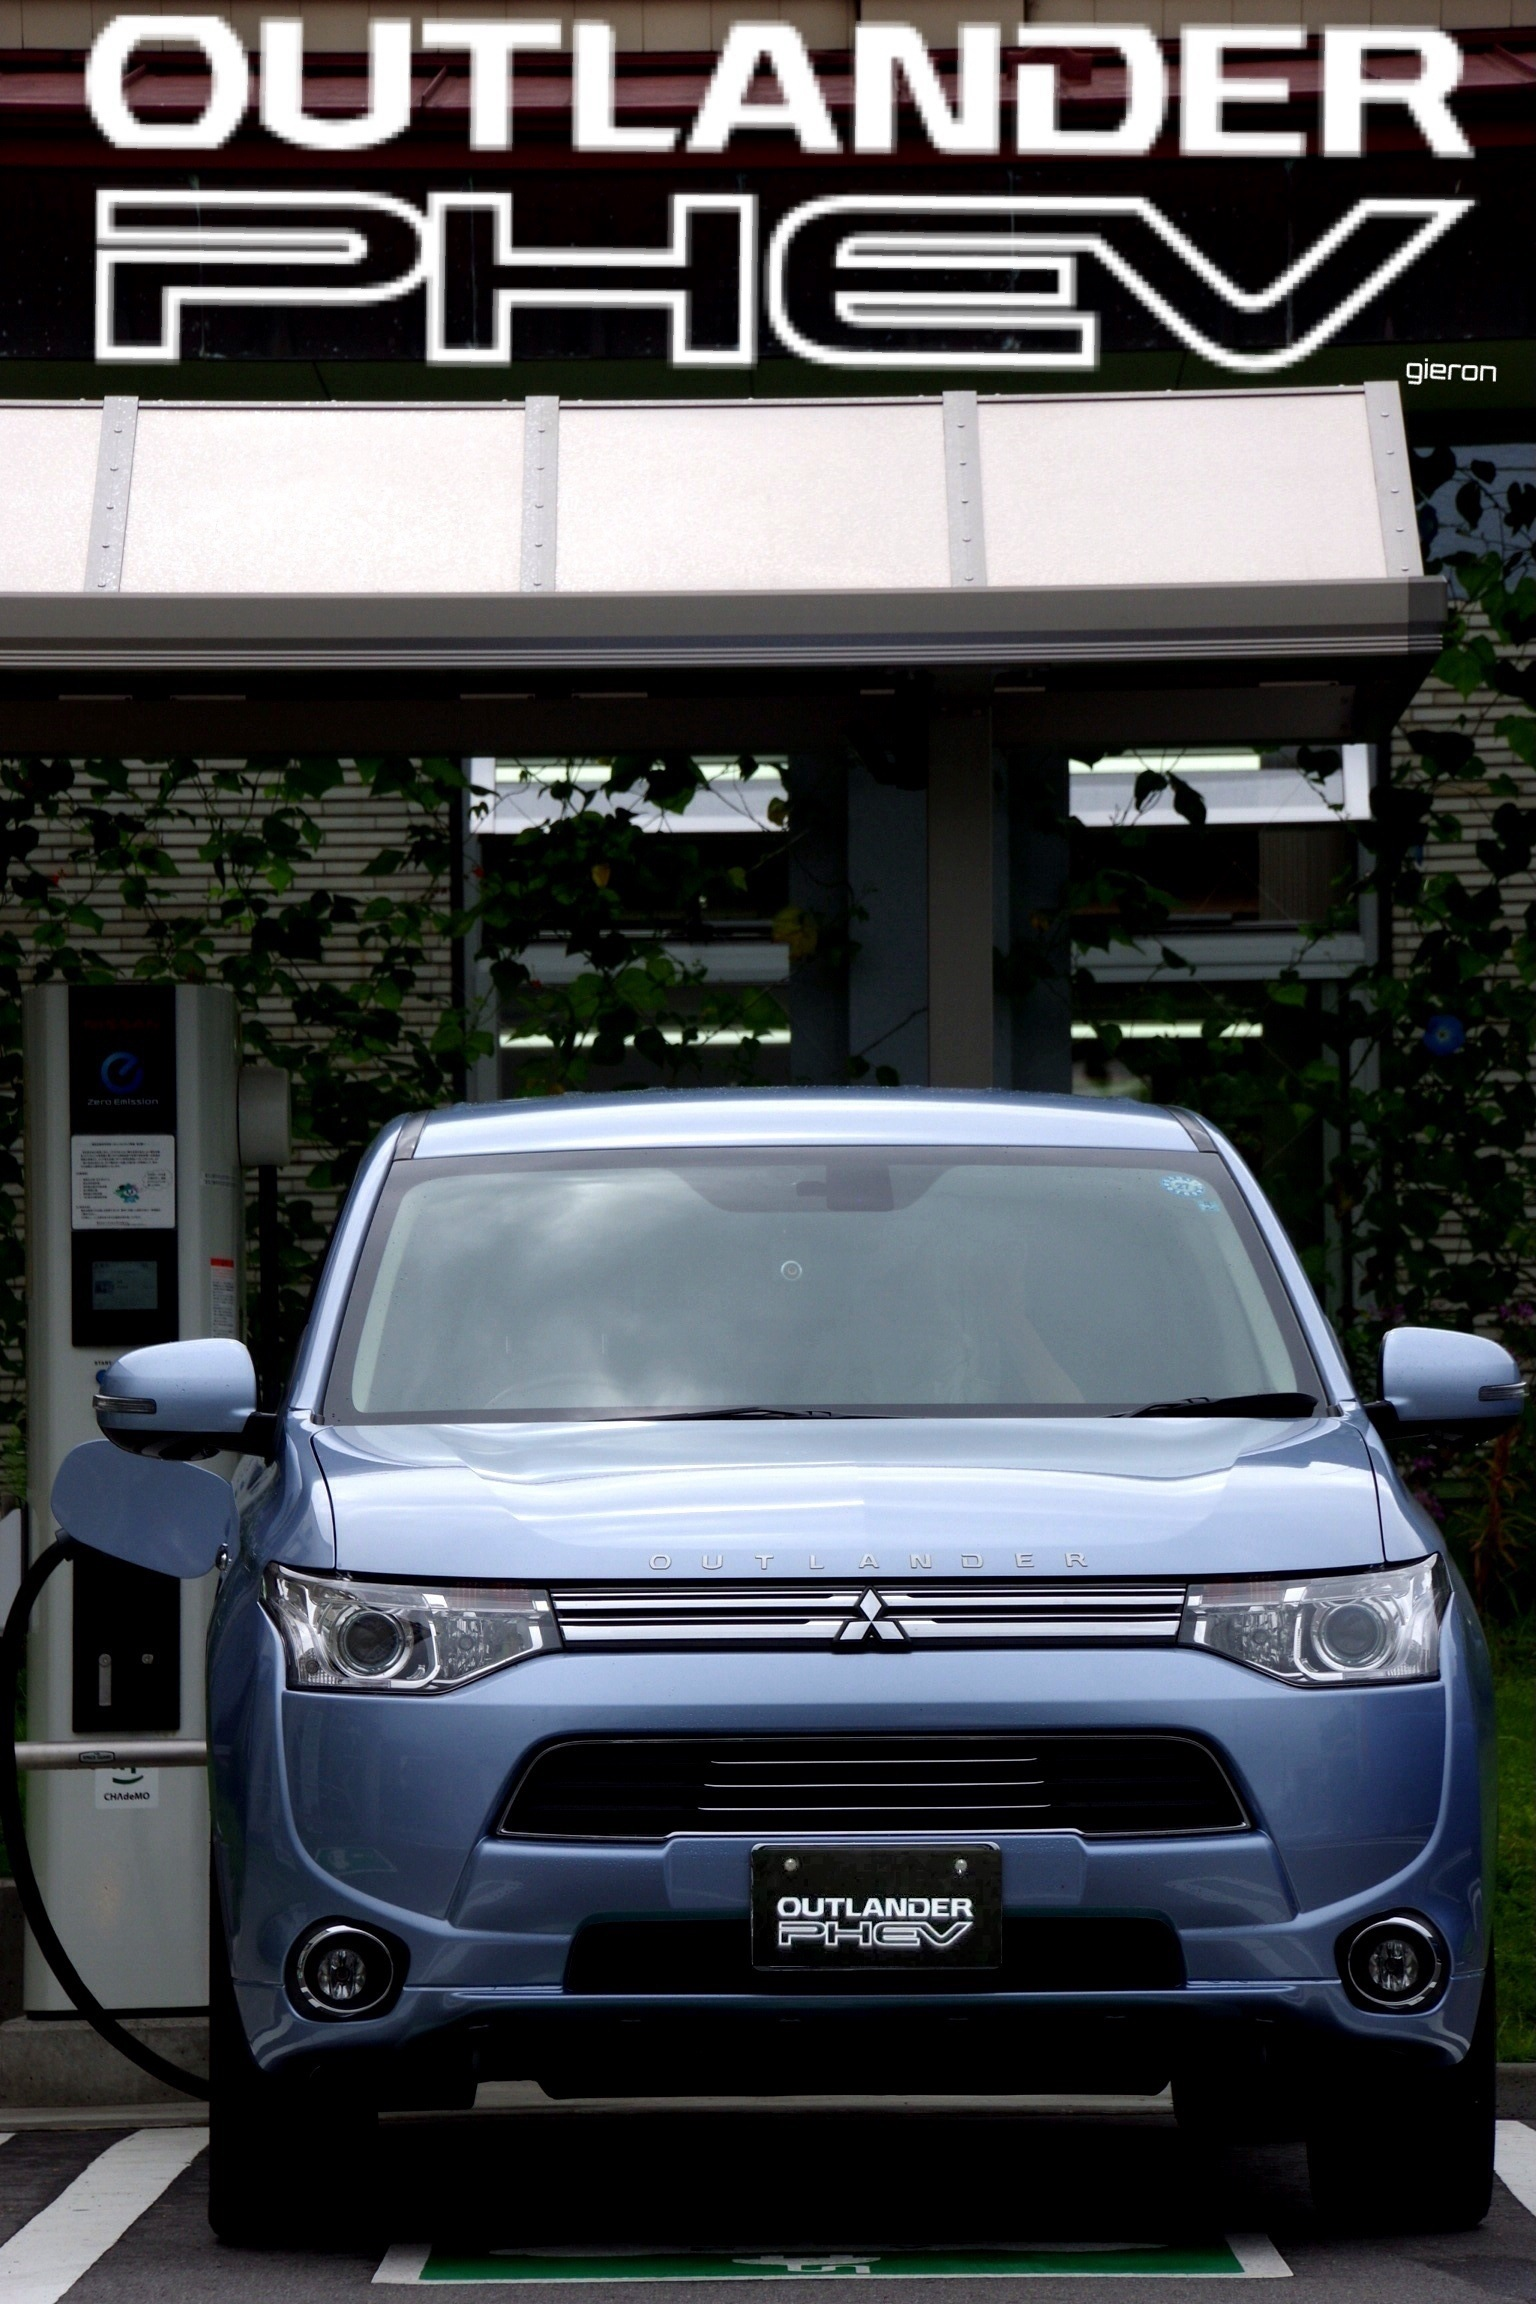 Mitsubishi outlander phev. In charge